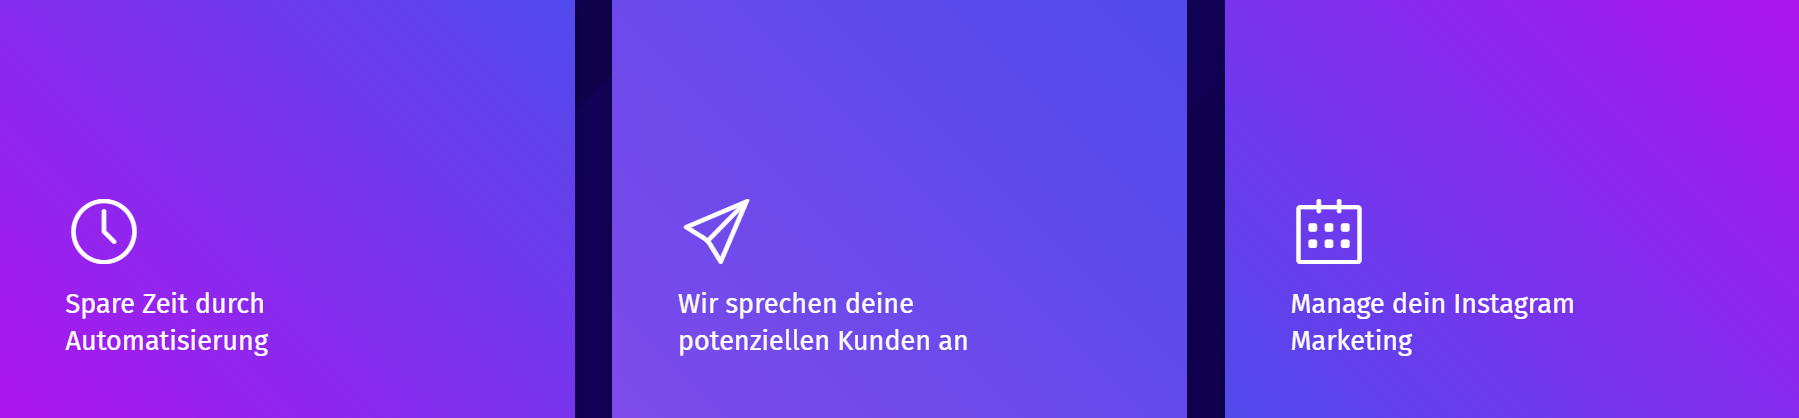 20 01  2019 18 01 17 - Instagram Marketing mit Trendda